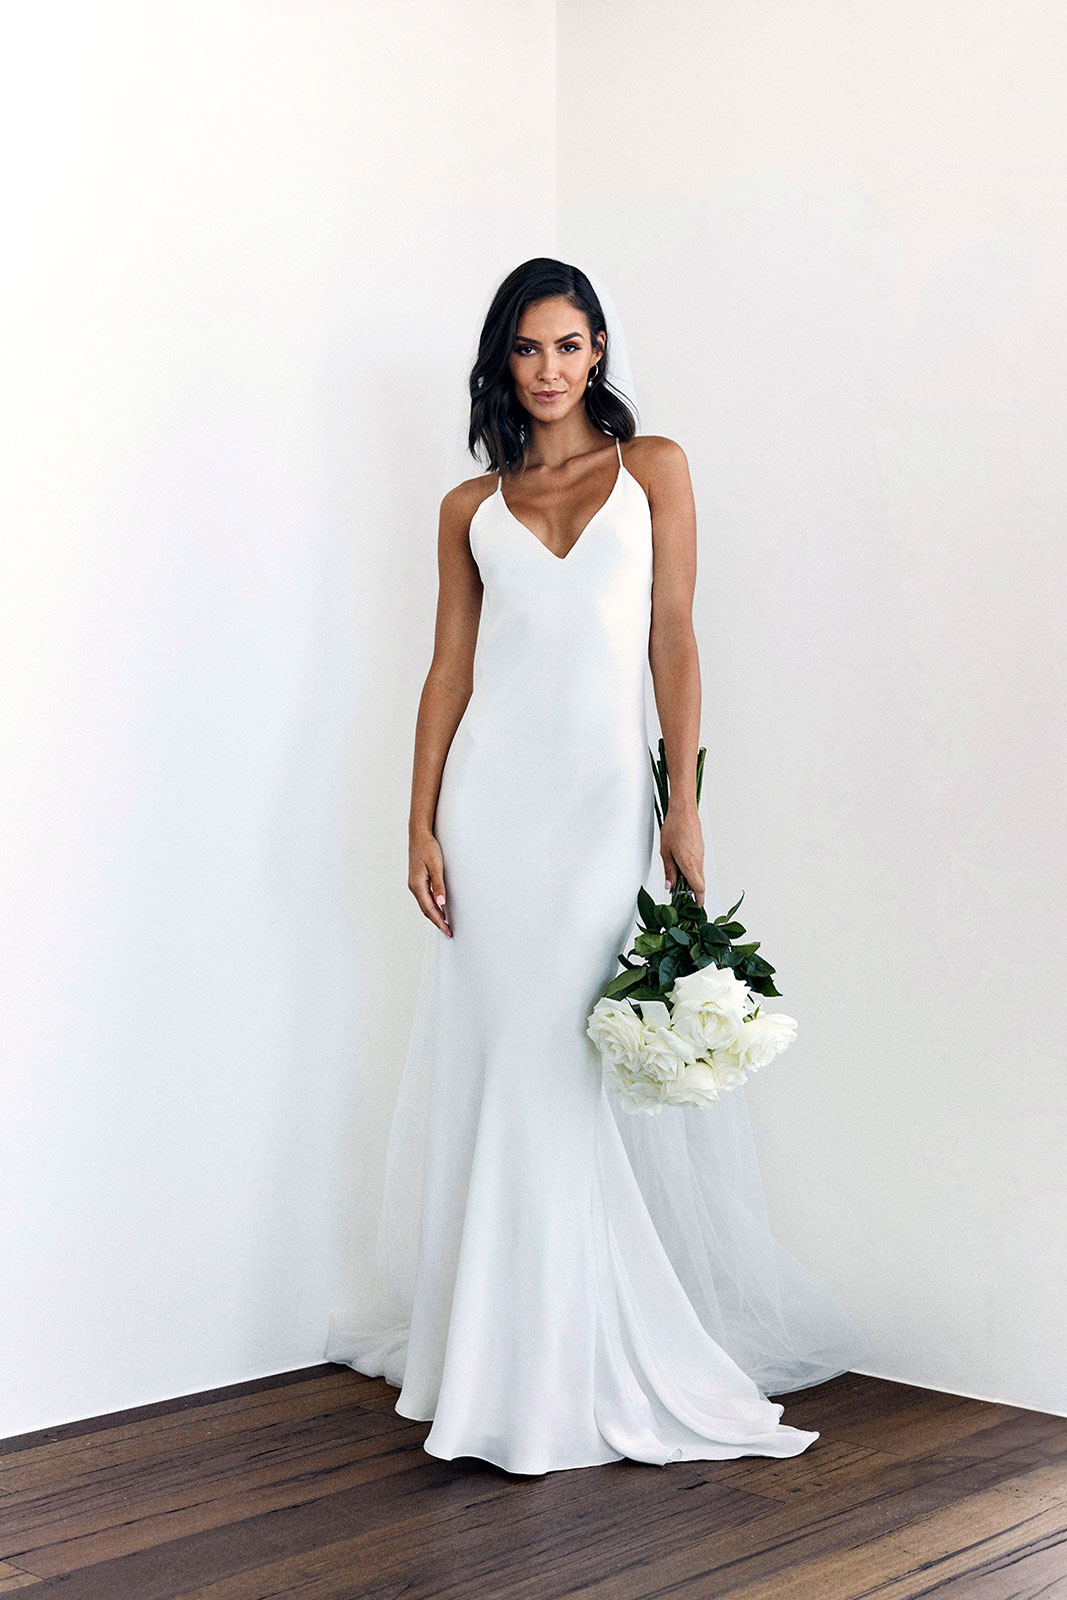 GRACE LOVES LACE Dove gown | Bridal Dresses under $2,000 | LOVE FIND CO. Bridal Dress Directory